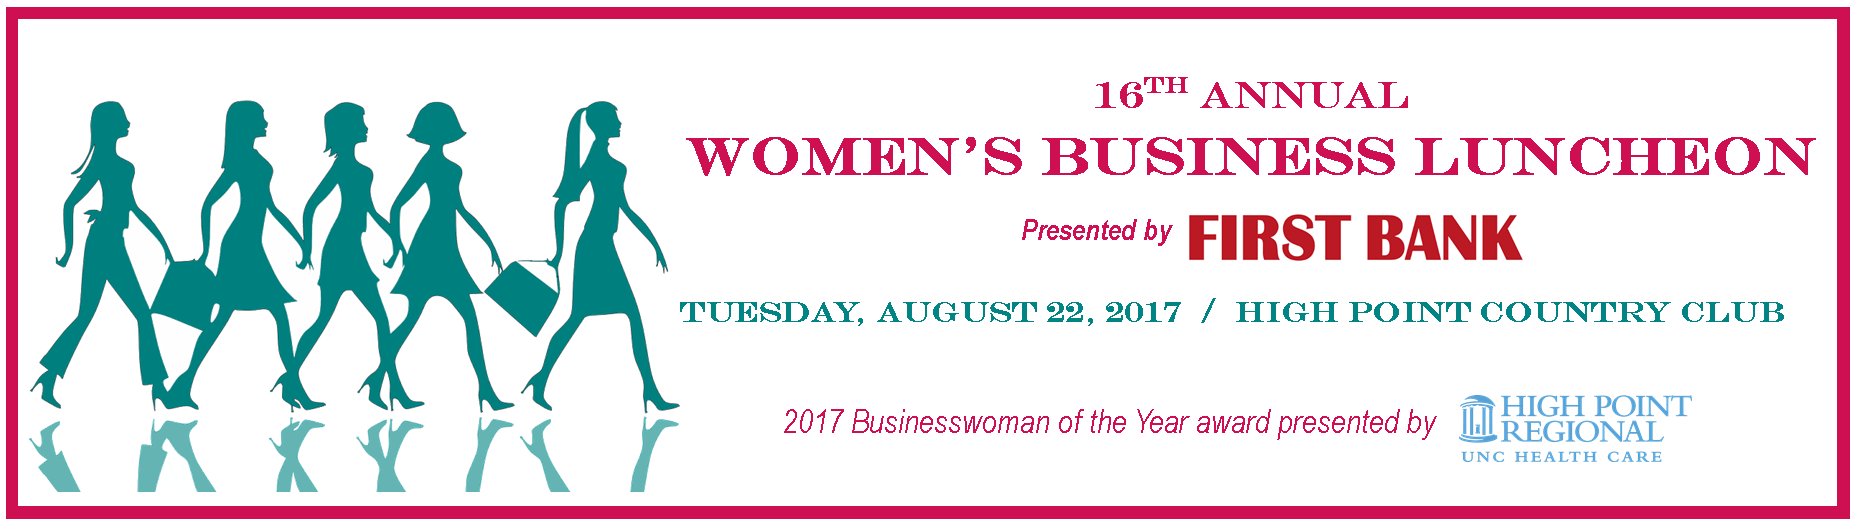 8.22.17_Womens-Luncheon-Banner-Ad.png